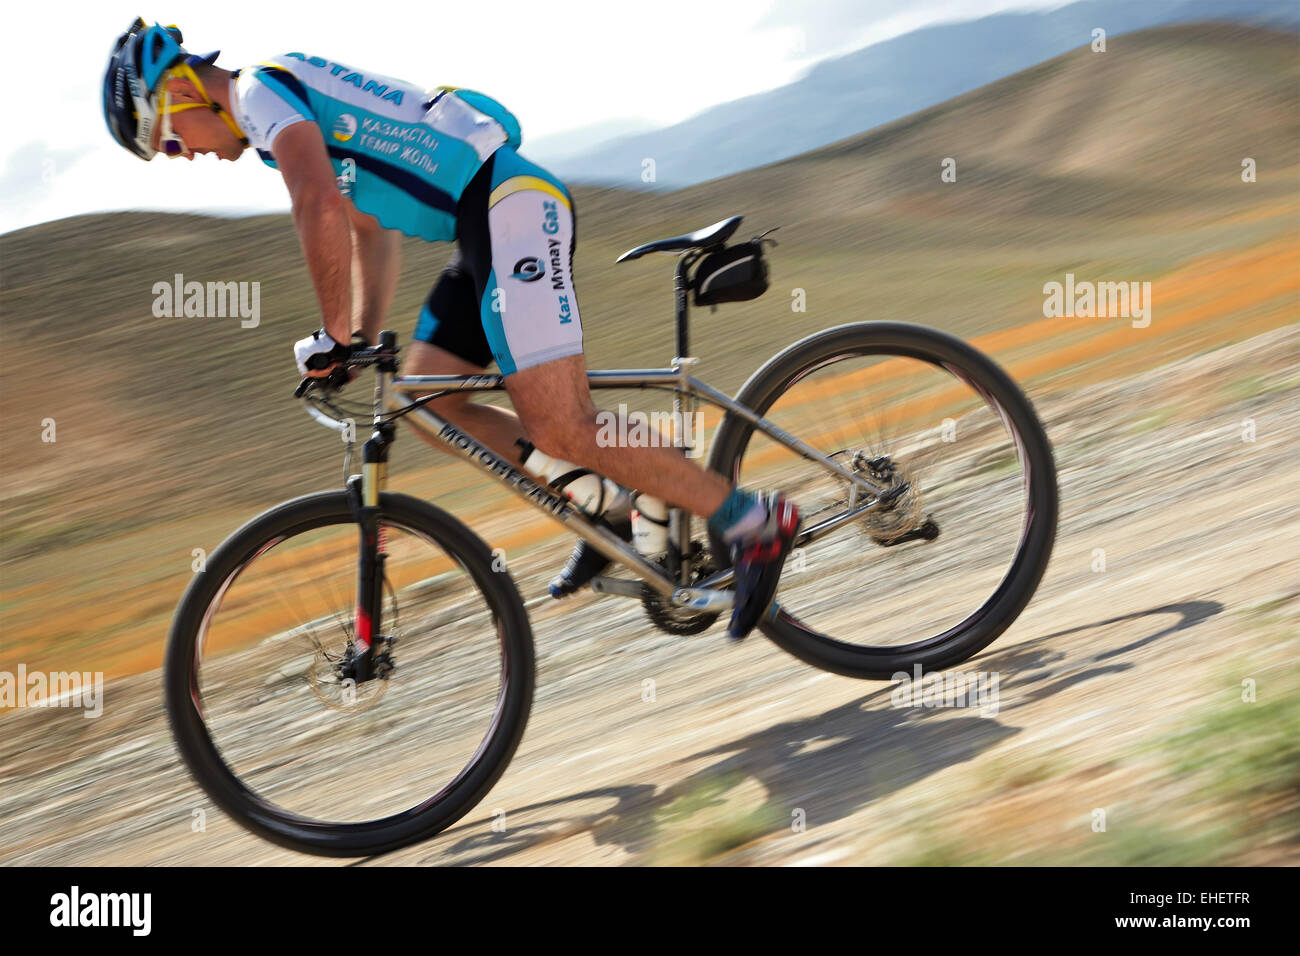 Adventure mountain bike competition - Stock Image